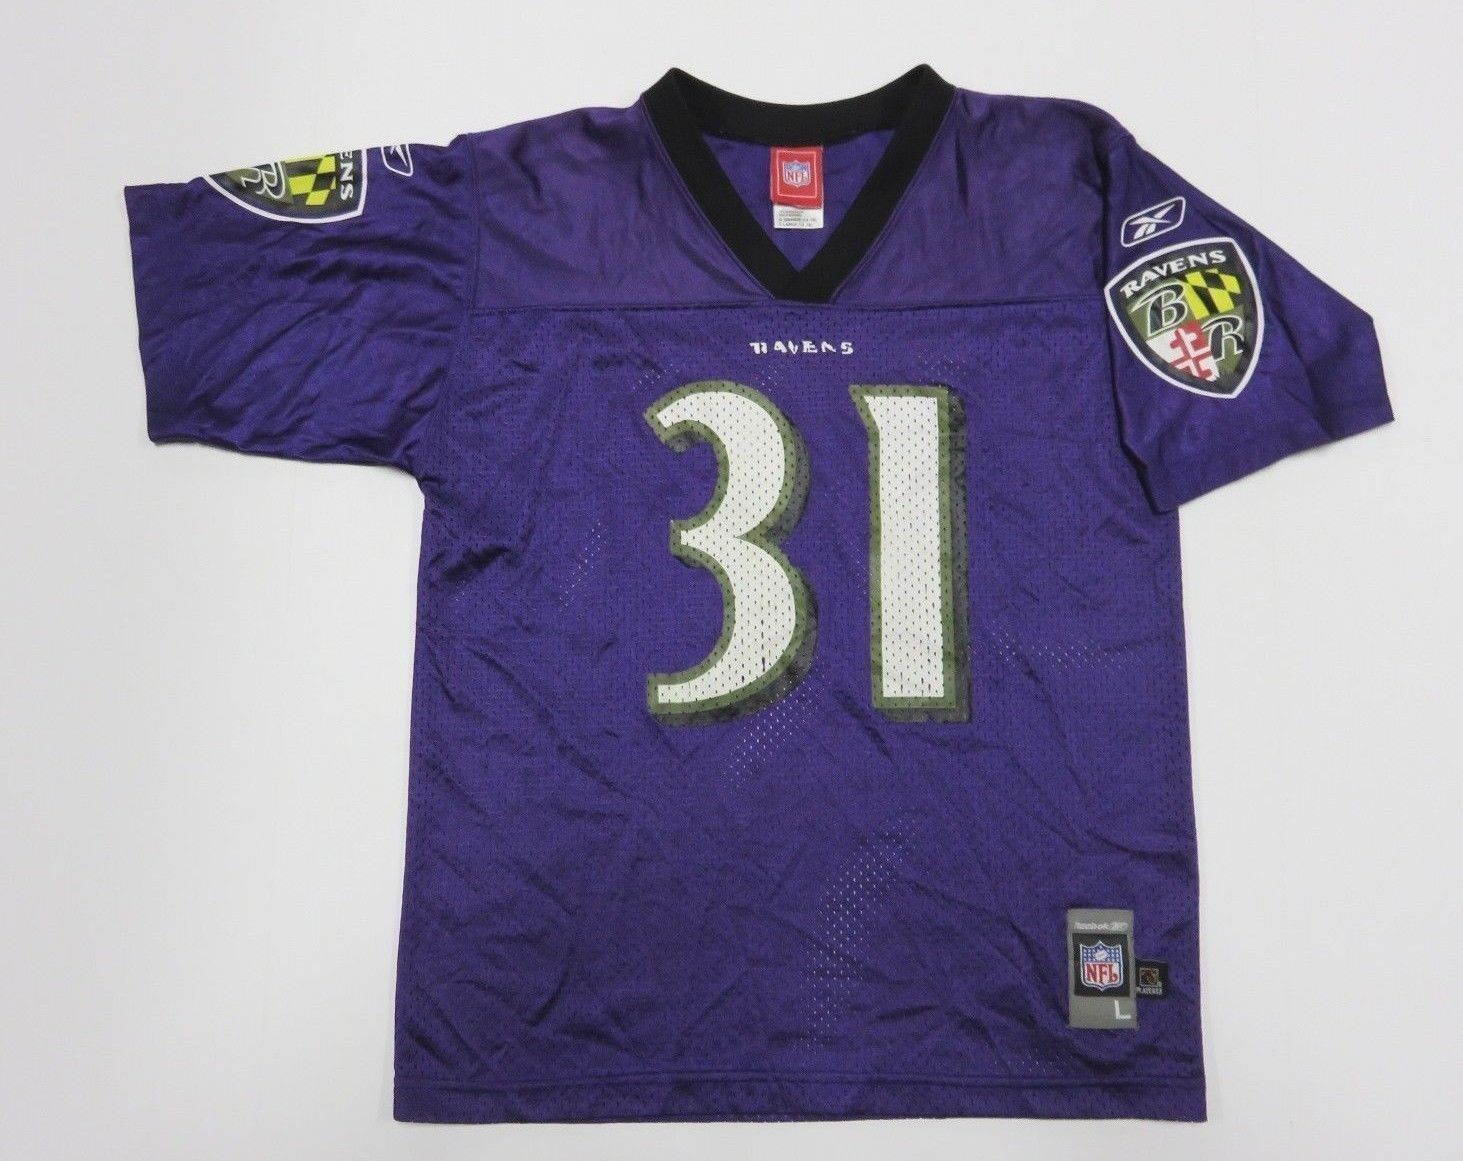 6f2f52dca NFL REEBOK Ray Lewis  31 Baltimore Ravens and 50 similar items